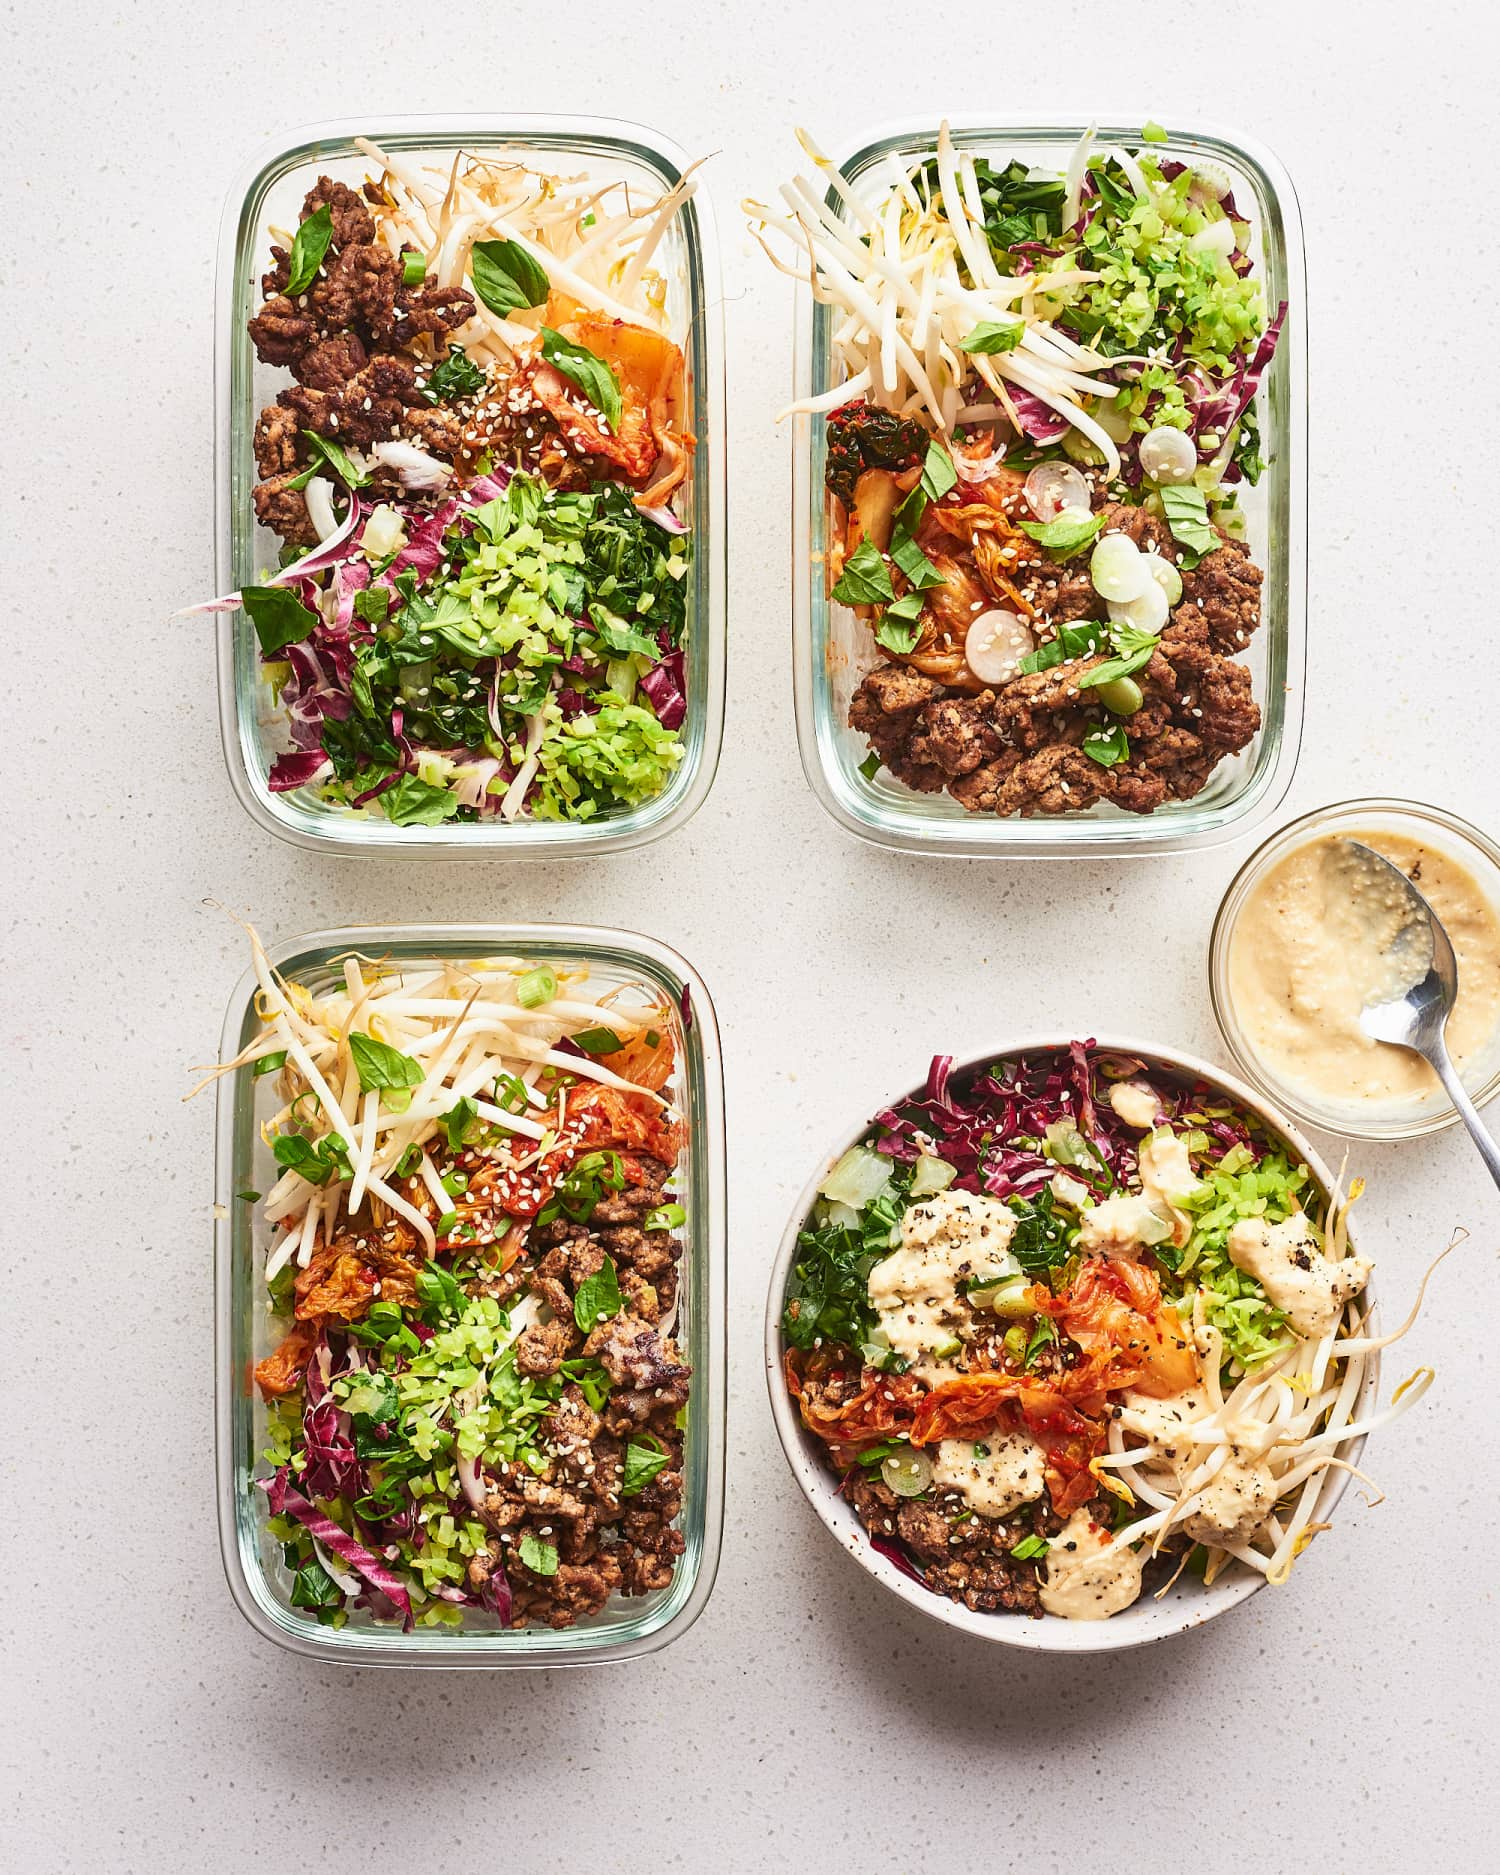 10 Ways To Cook Ground Beef For Meal Prep